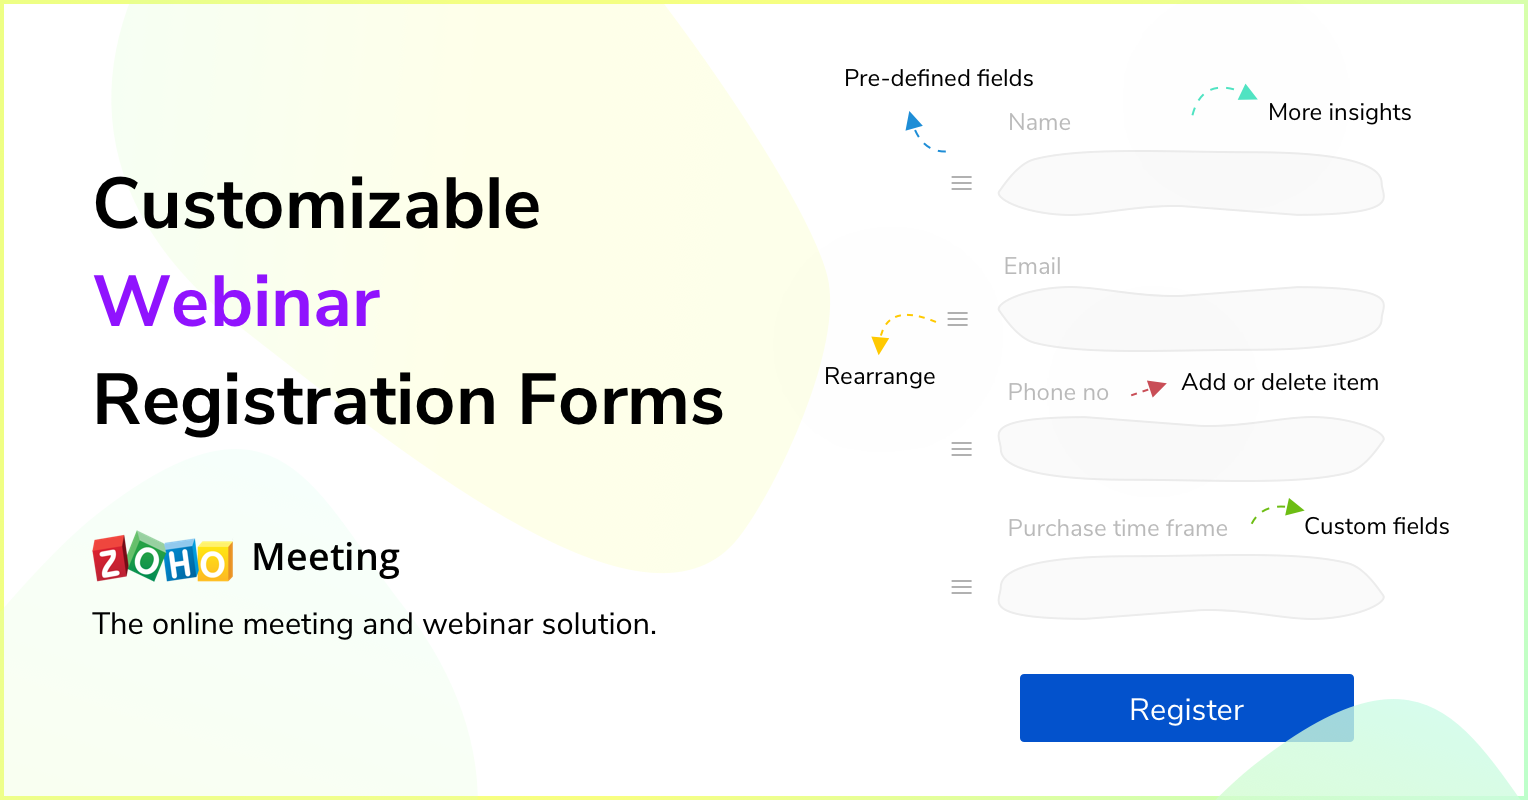 Customizable Webinar Registration Forms